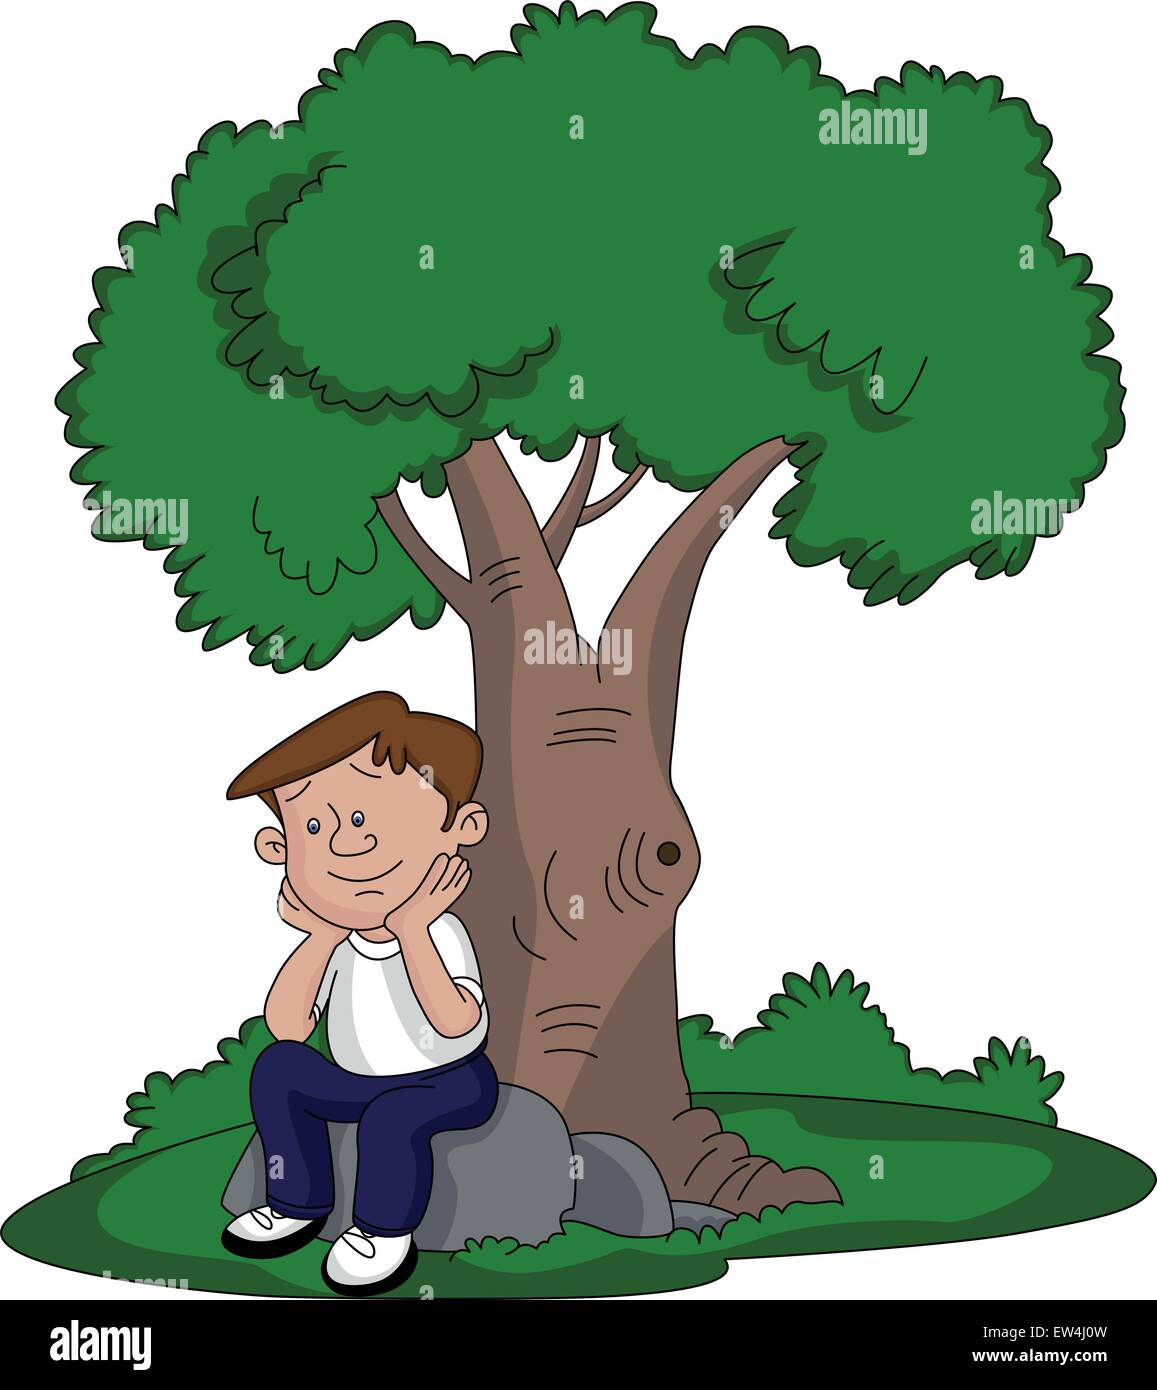 Vector Illustration Of Thoughtful Young Man Sitting Under A Tree Stock Vector Image Art Alamy This video where he is a. https www alamy com stock photo vector illustration of thoughtful young man sitting under a tree 84309817 html